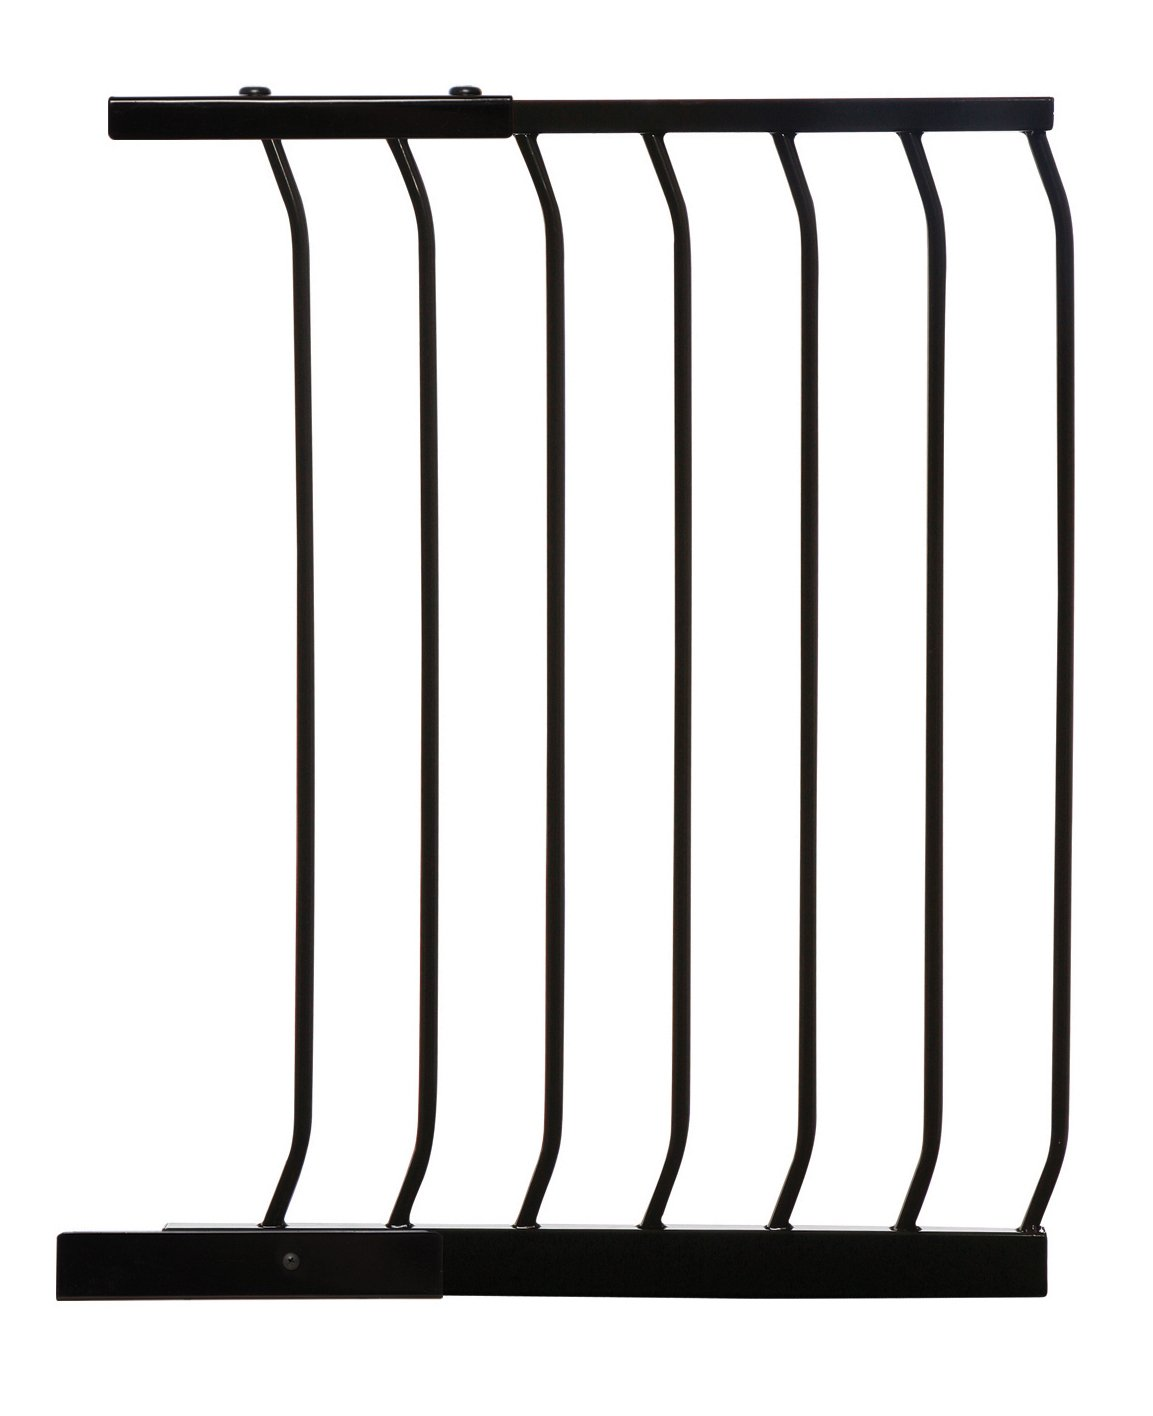 Dreambaby F831B 14-Inch Gate Extension (Black)